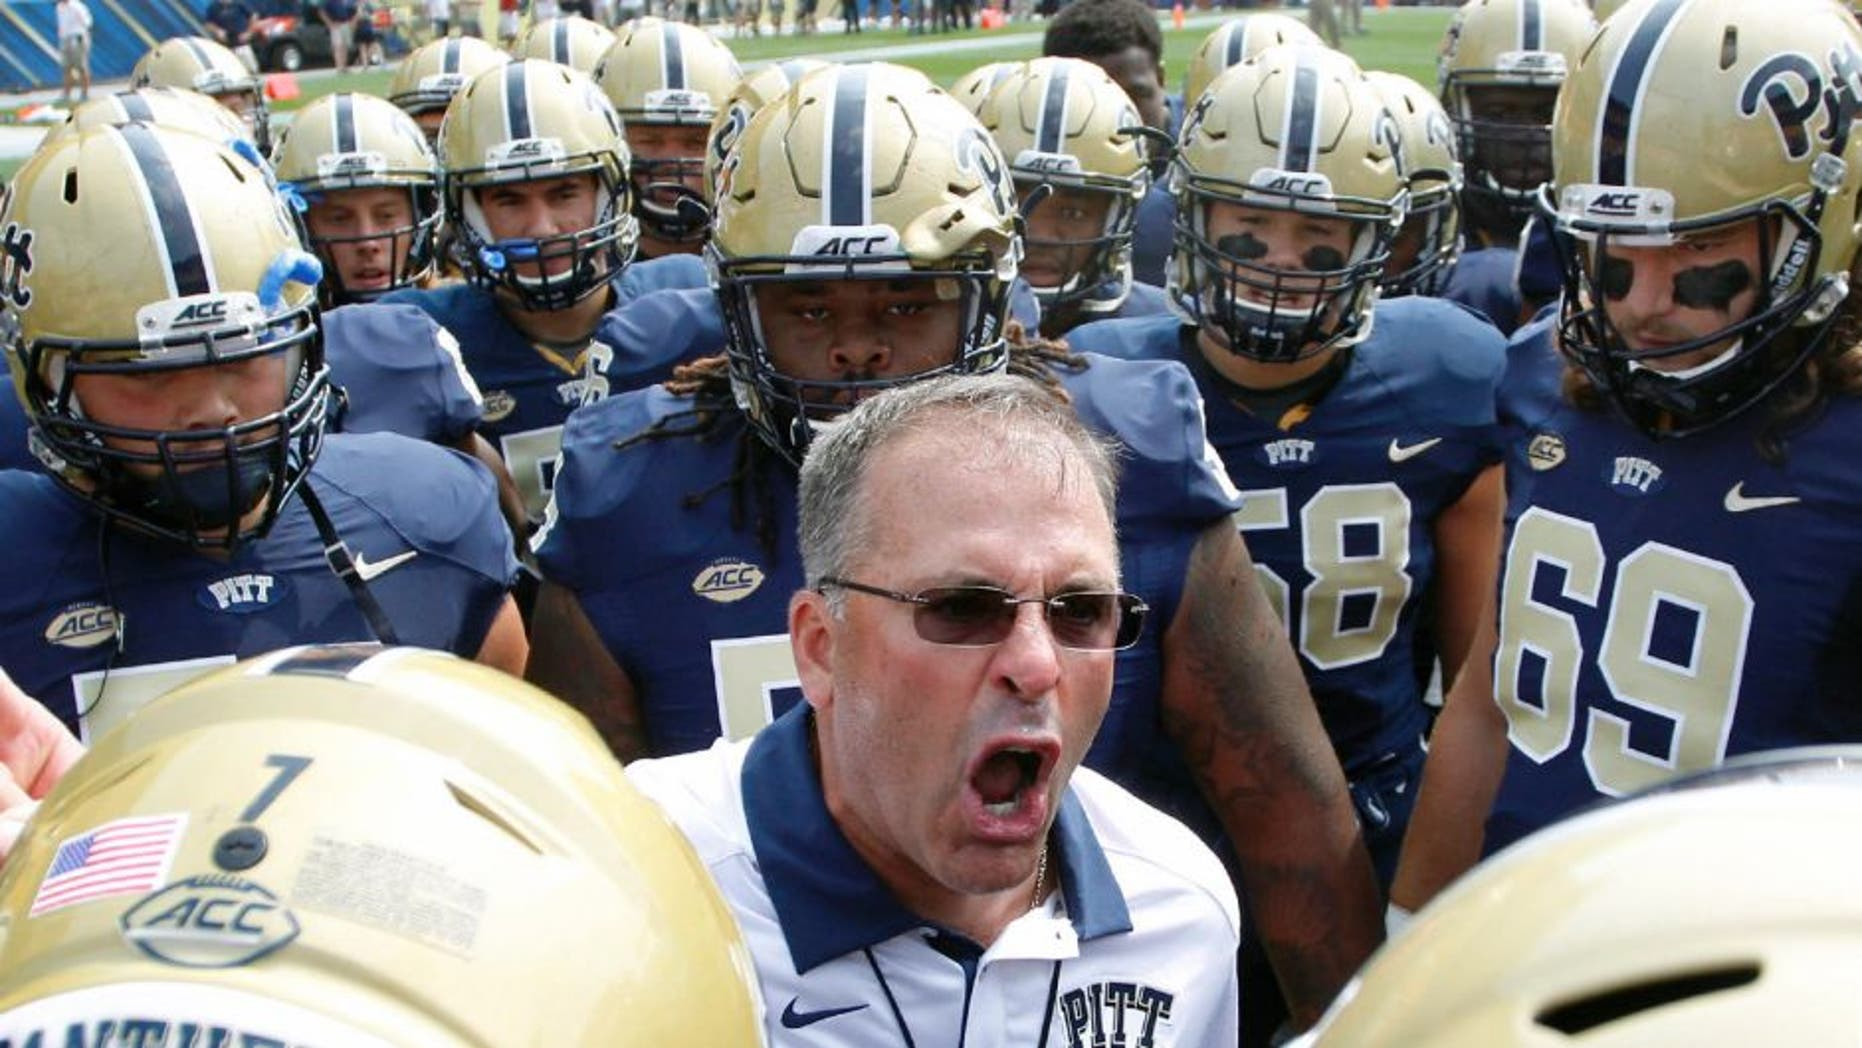 Sep 5, 2015; Pittsburgh, PA, USA; Pittsburgh Panthers head coach Pat Narduzzi (C) talks to his team prior to their game against the Youngstown State Penguins at Heinz Field. Mandatory Credit: Charles LeClaire-USA TODAY Sports